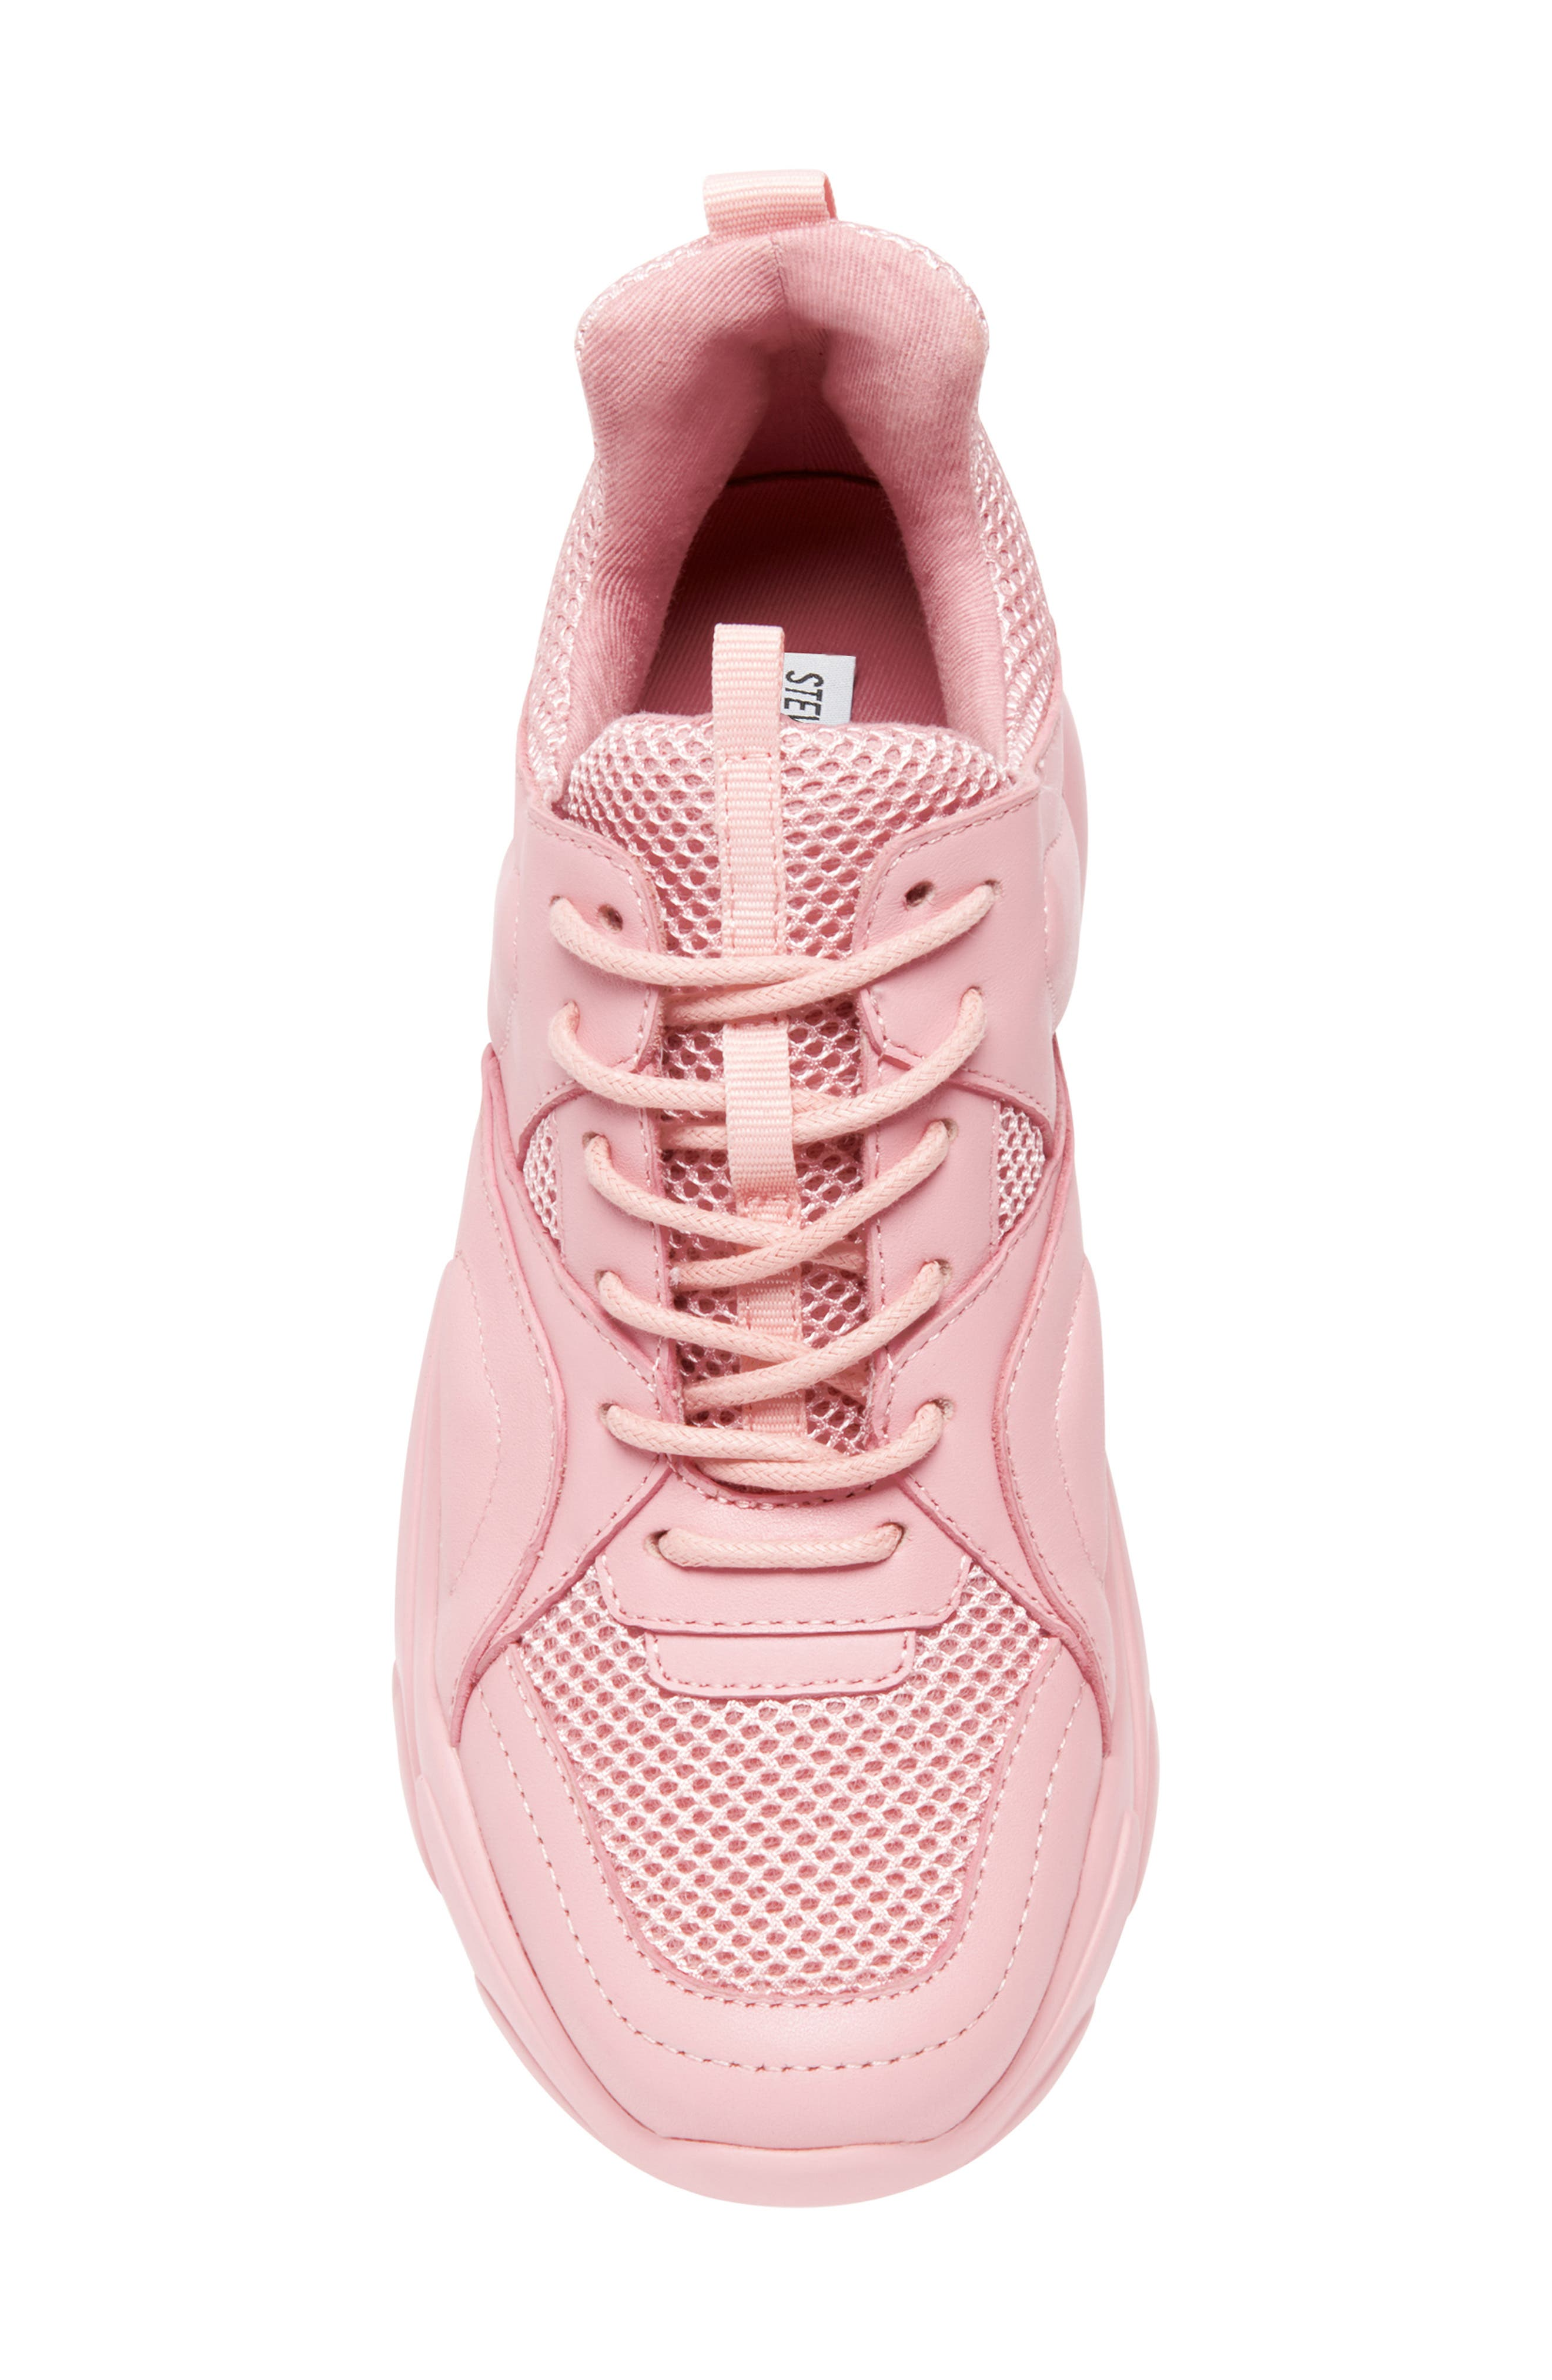 Movement Sneaker,                             Alternate thumbnail 5, color,                             PINK LEATHER